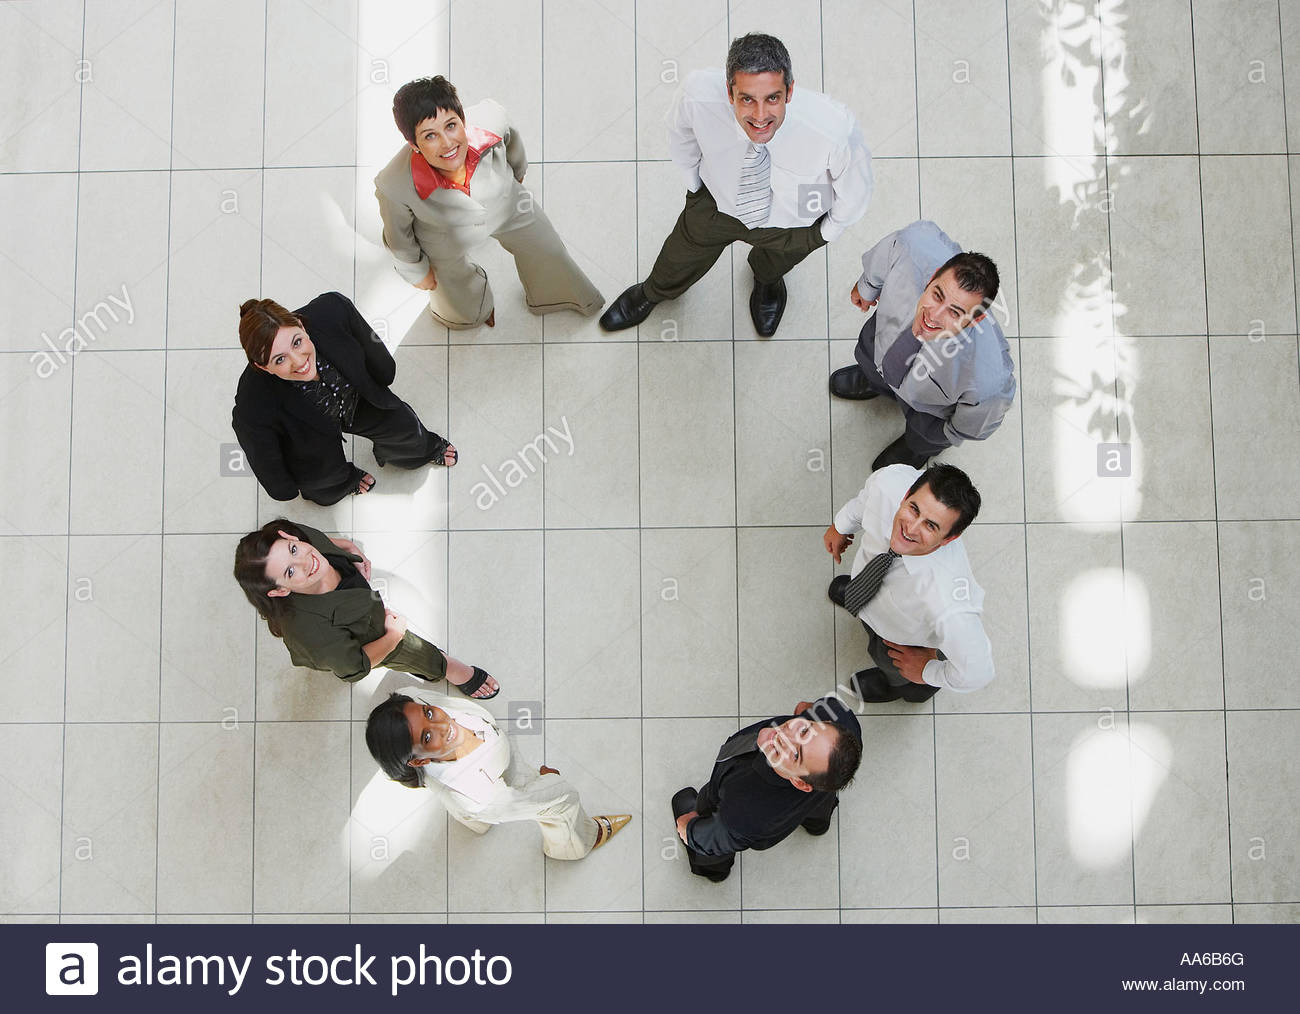 Aerial View Of Businesspeople In Circle Looking Up